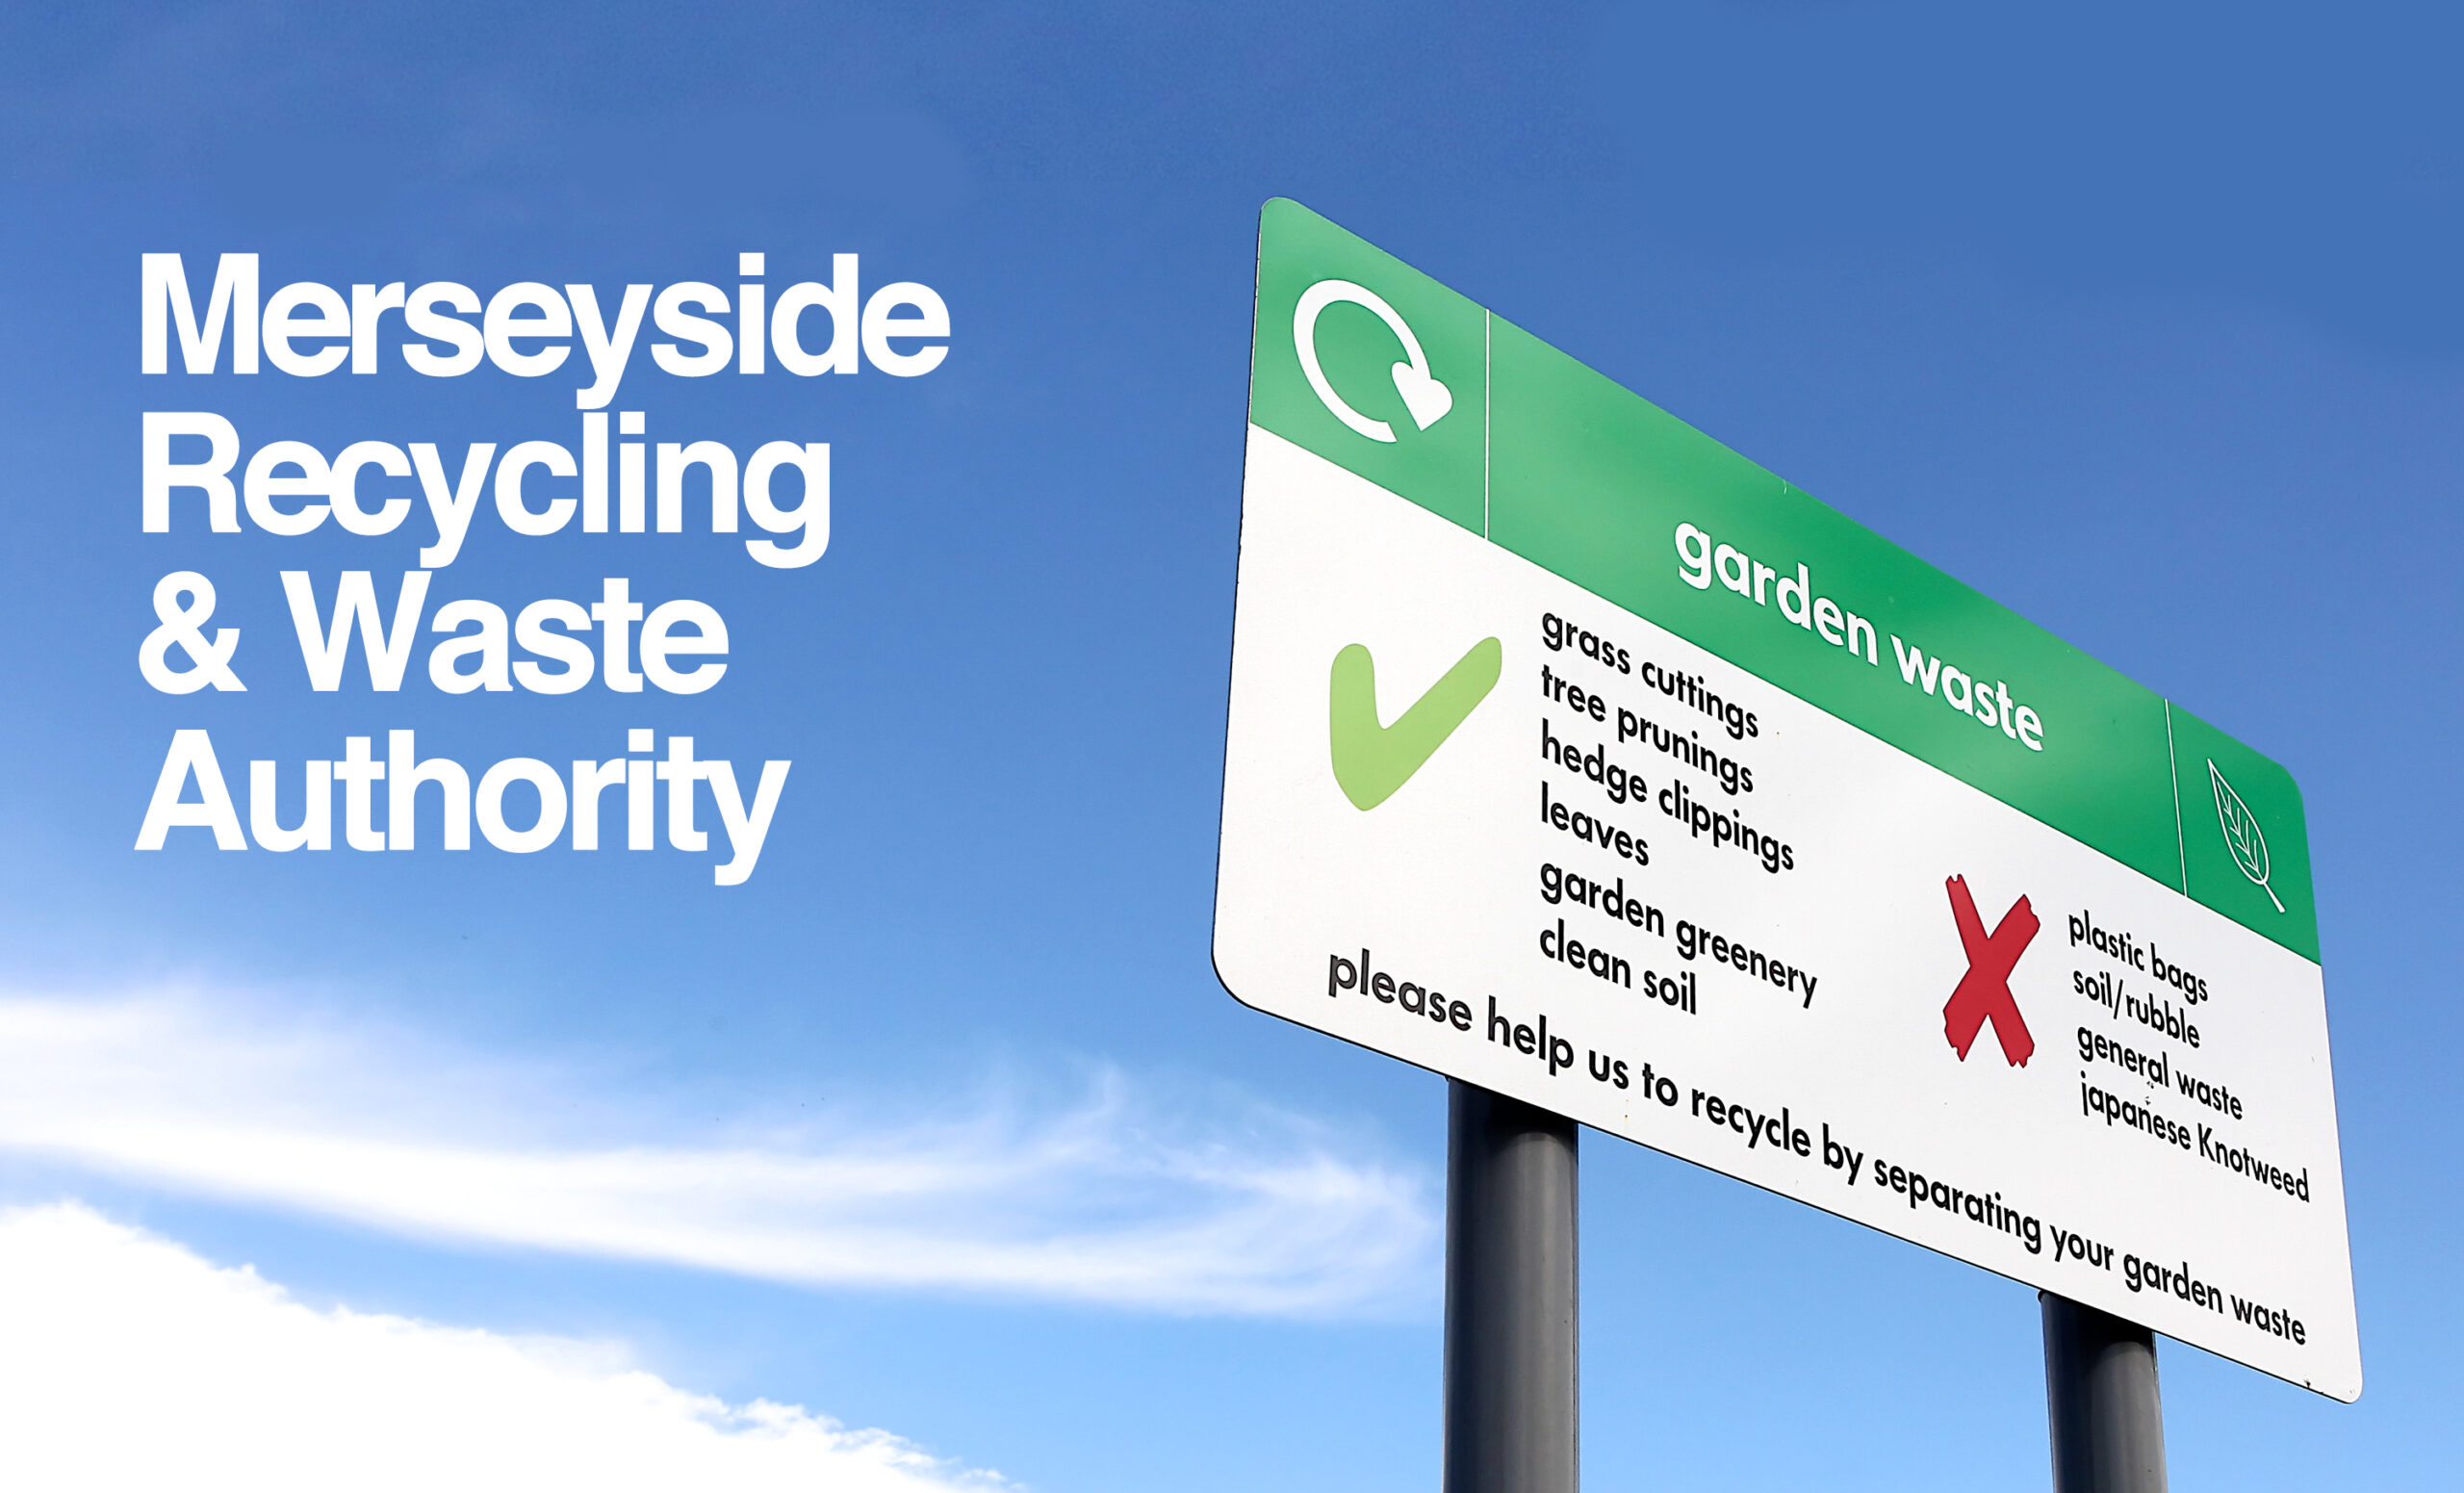 Merseyside Recycling & Waste Authority